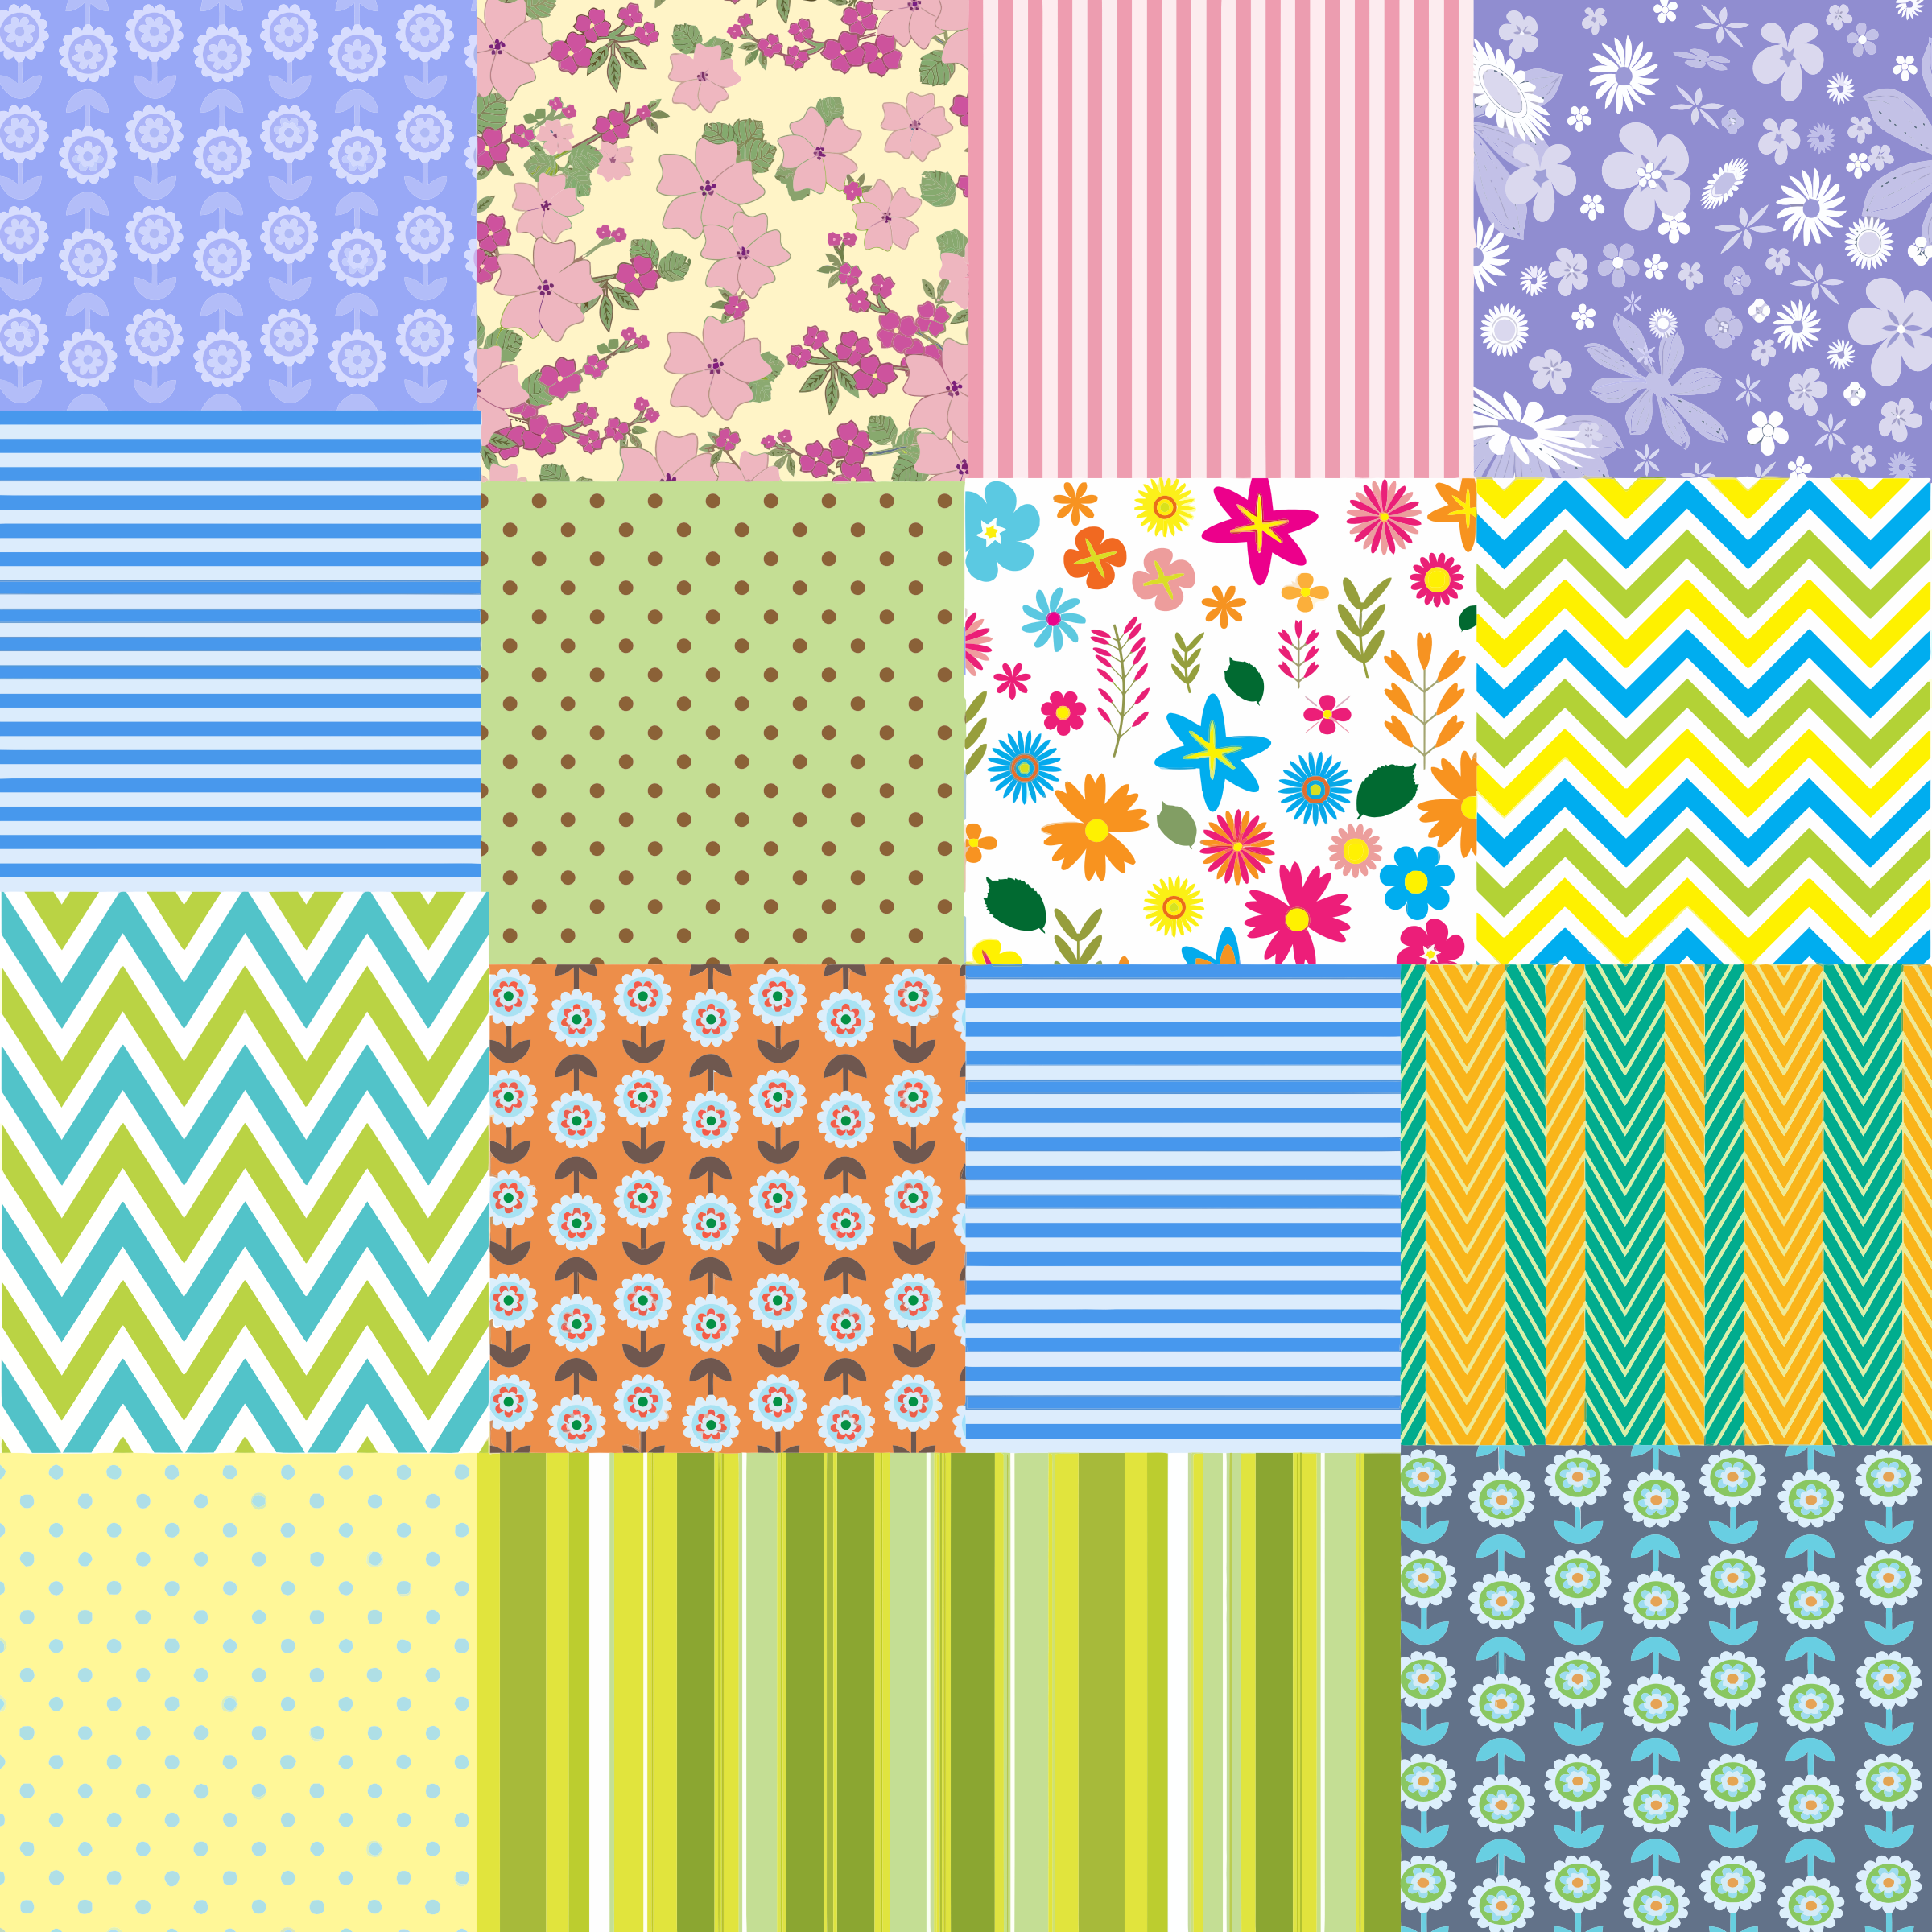 Free quilt clipart clipart royalty free library Free Quilting Cliparts, Download Free Clip Art, Free Clip Art on ... clipart royalty free library